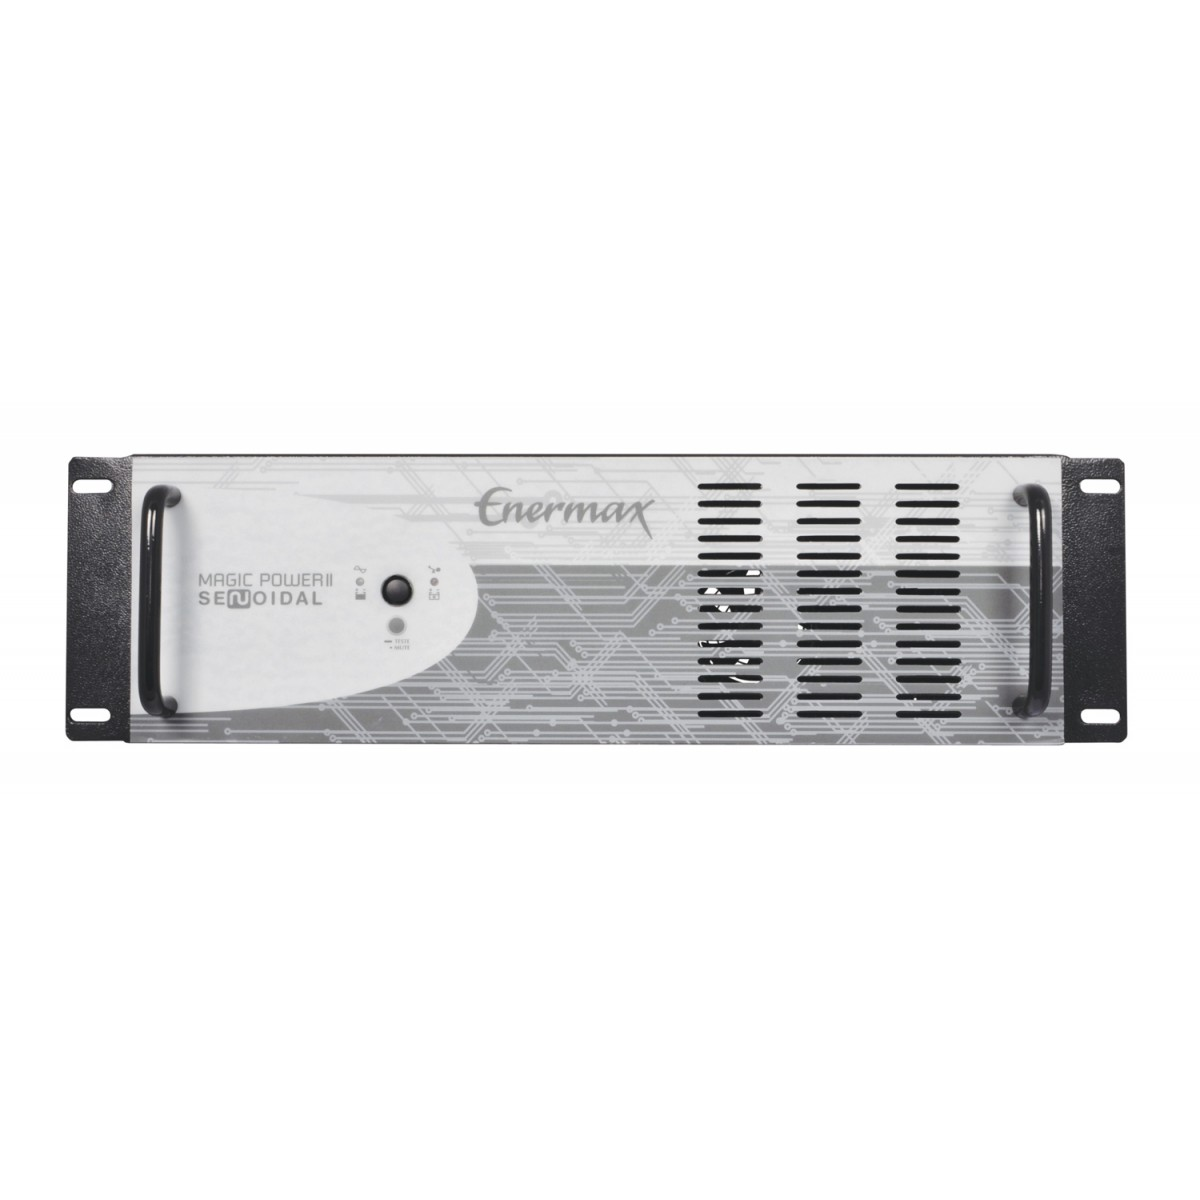 Nobreak Senoidal Magic Power II Enermax 1500va Bivolt Automático S. 115v Rack USB